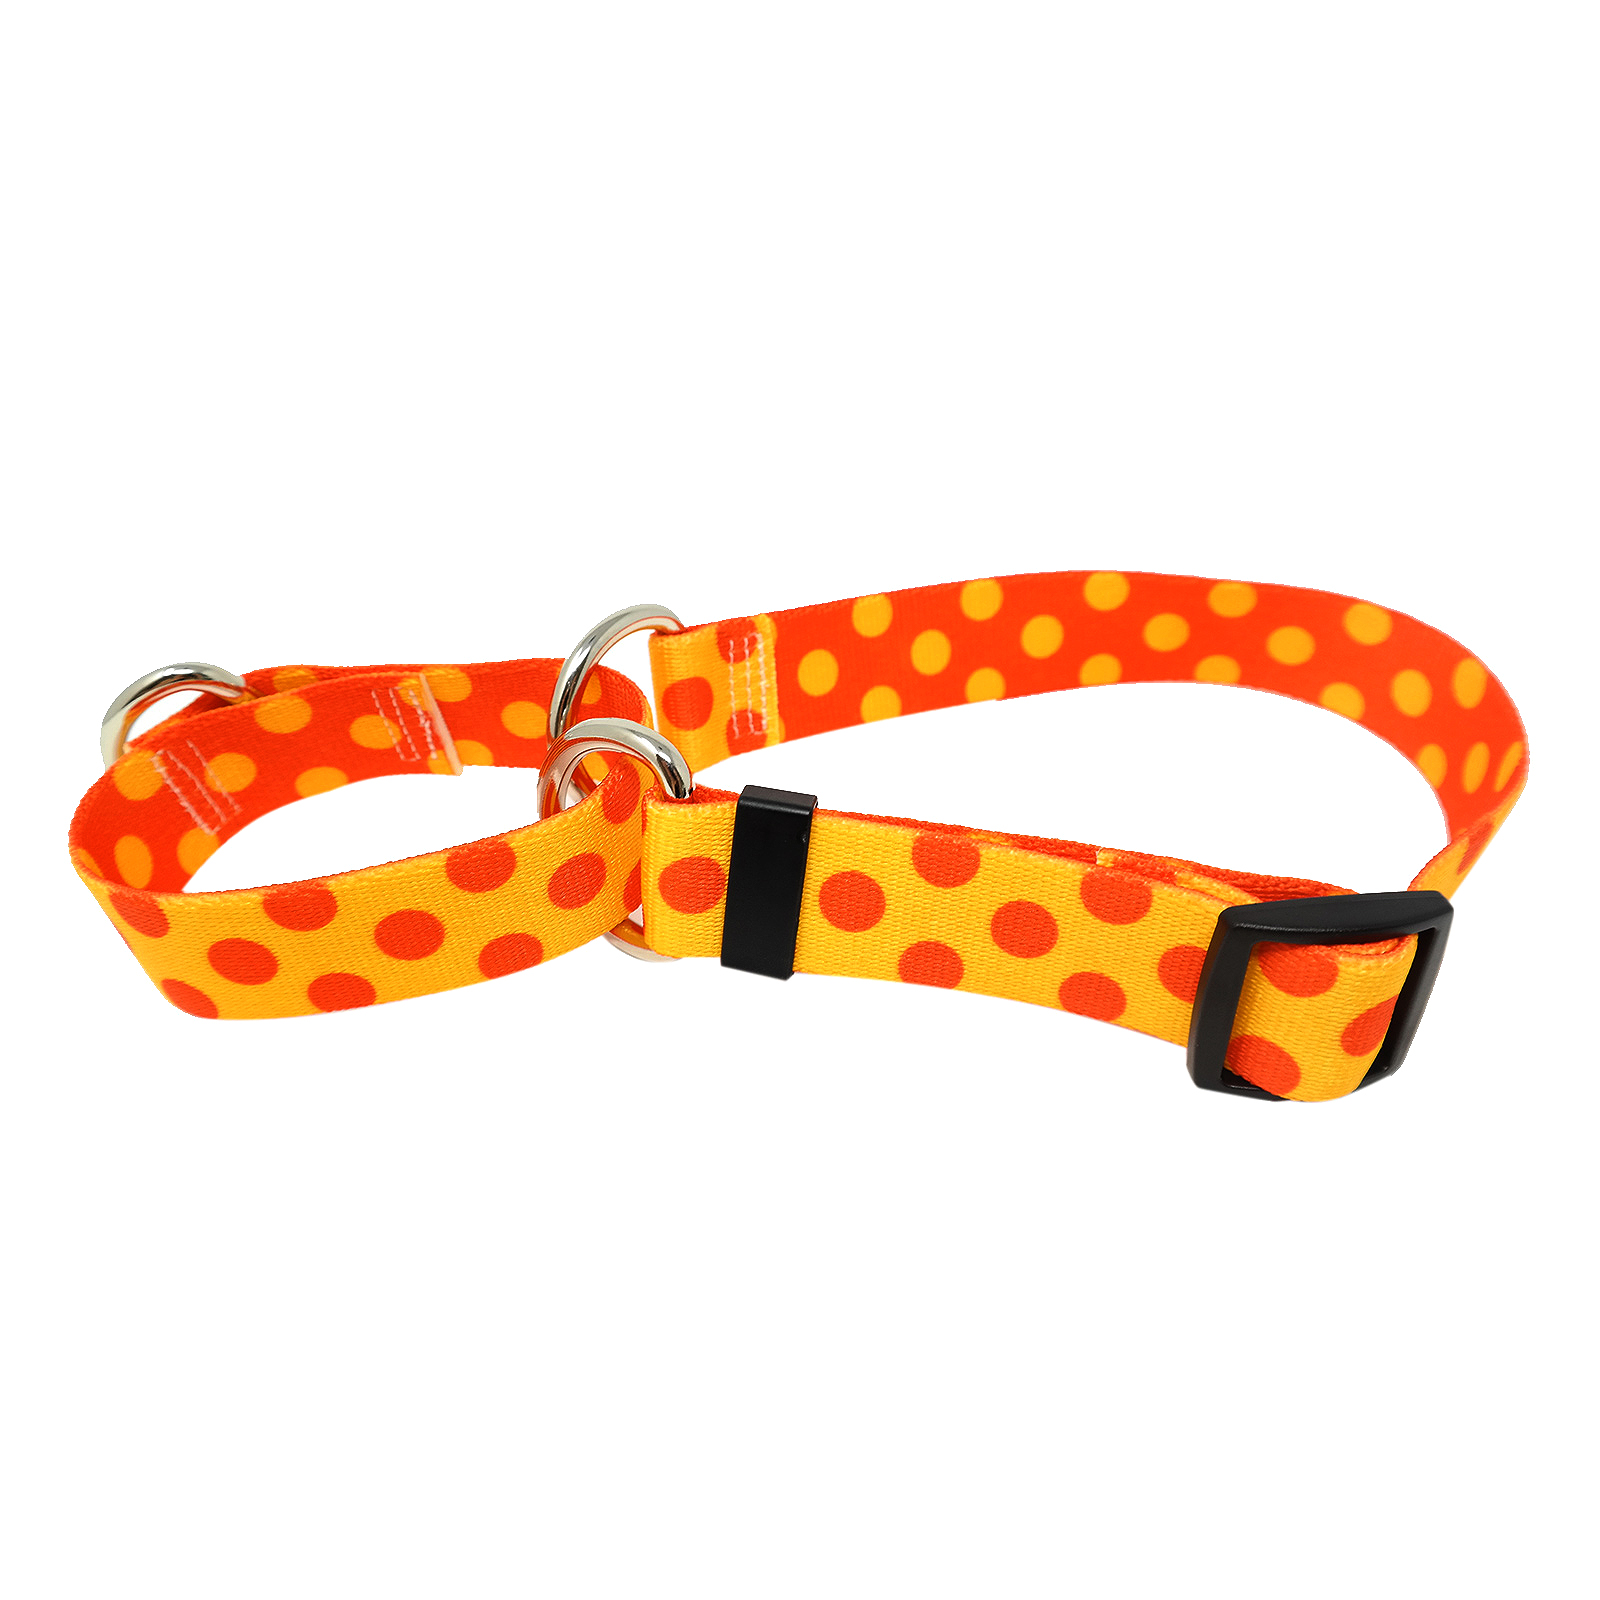 Goldenrod & Orange Polka Martingale Collar